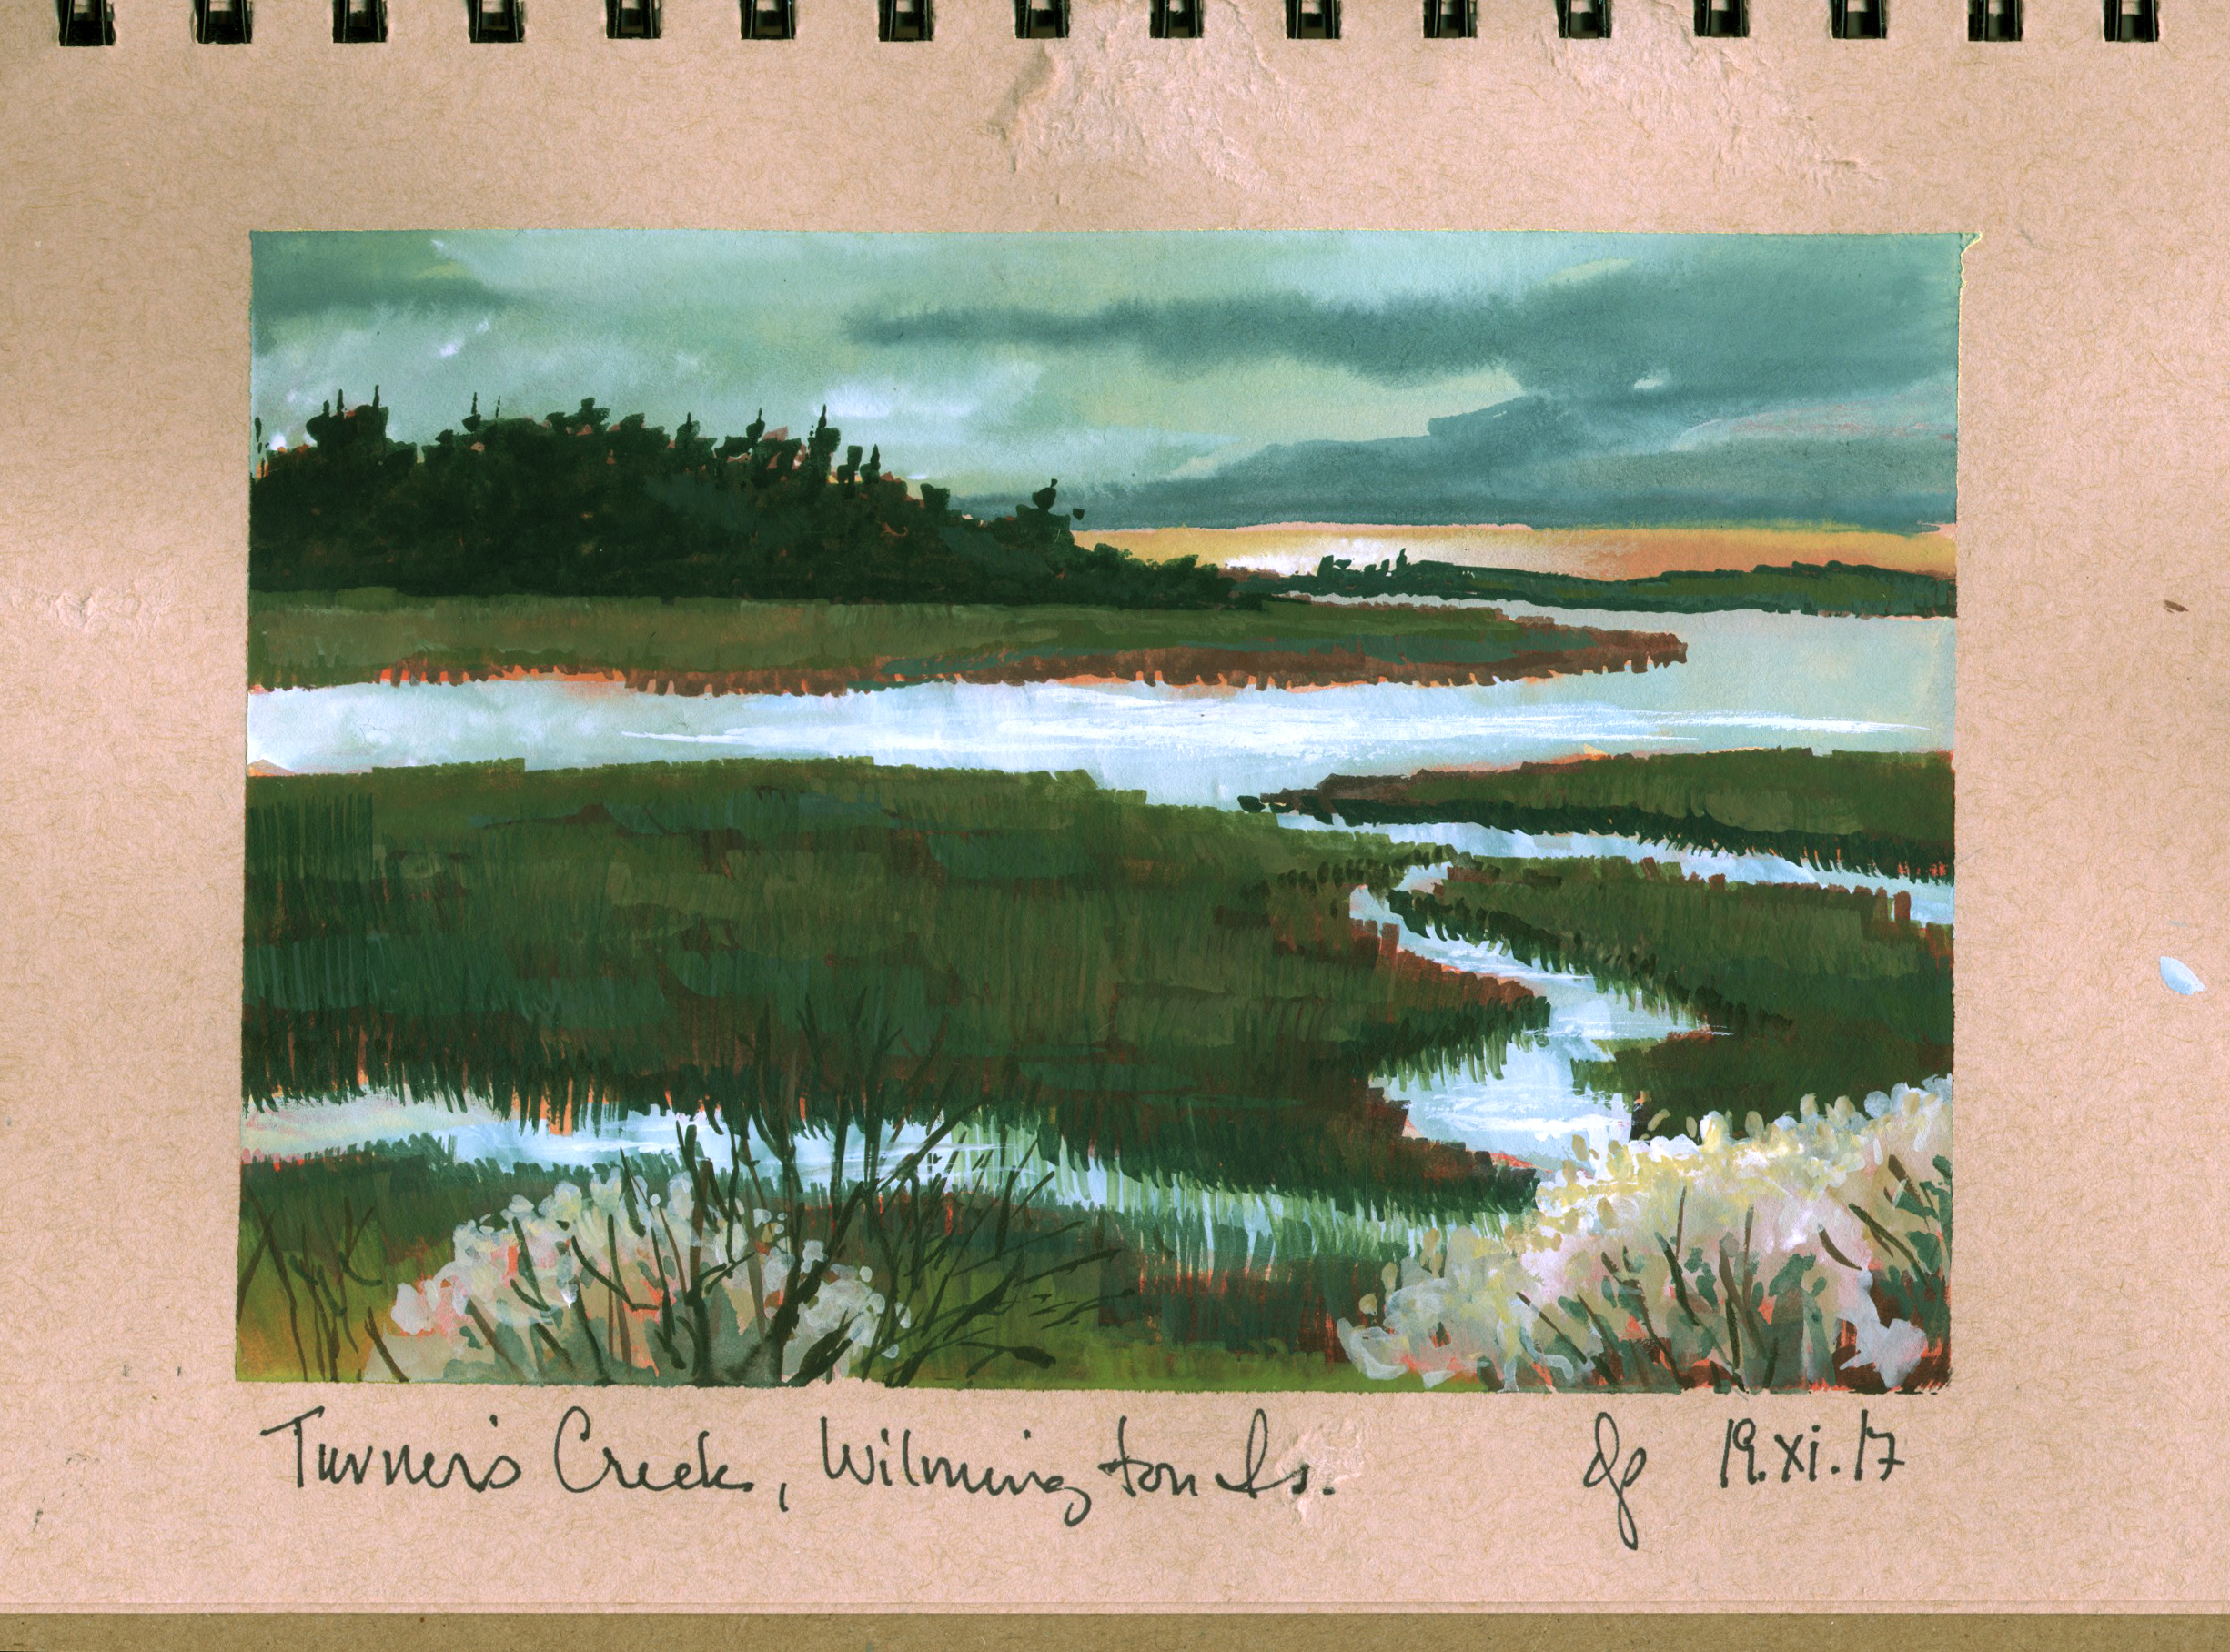 Full-color gouache sketch of Turner's Creek, separating Wilmington from Whitemarsh Island